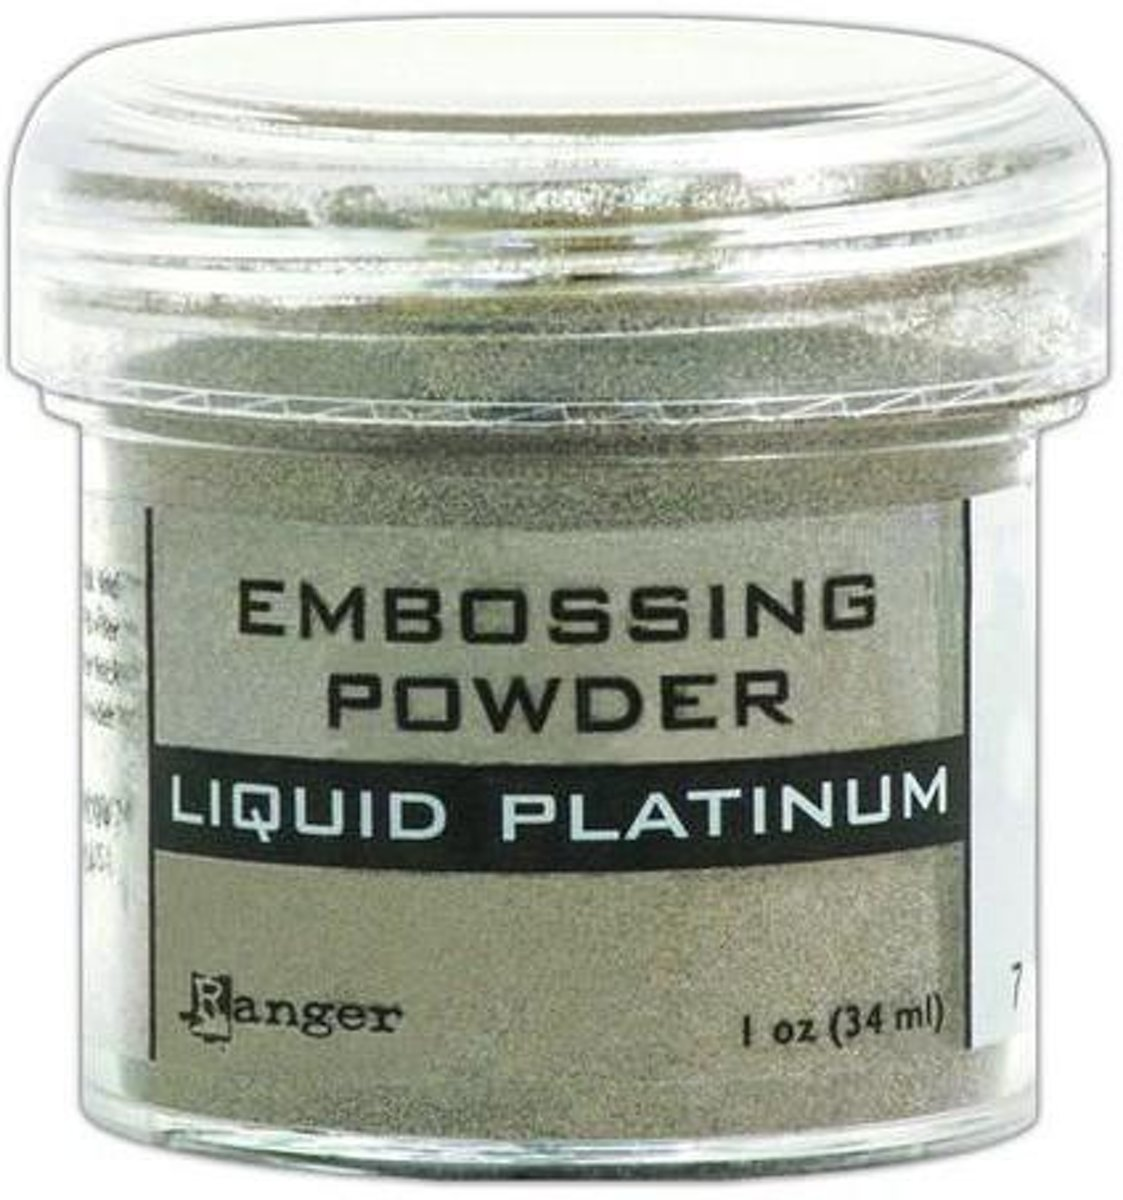 Ranger Embossing Powder 34ml - liquid platinum